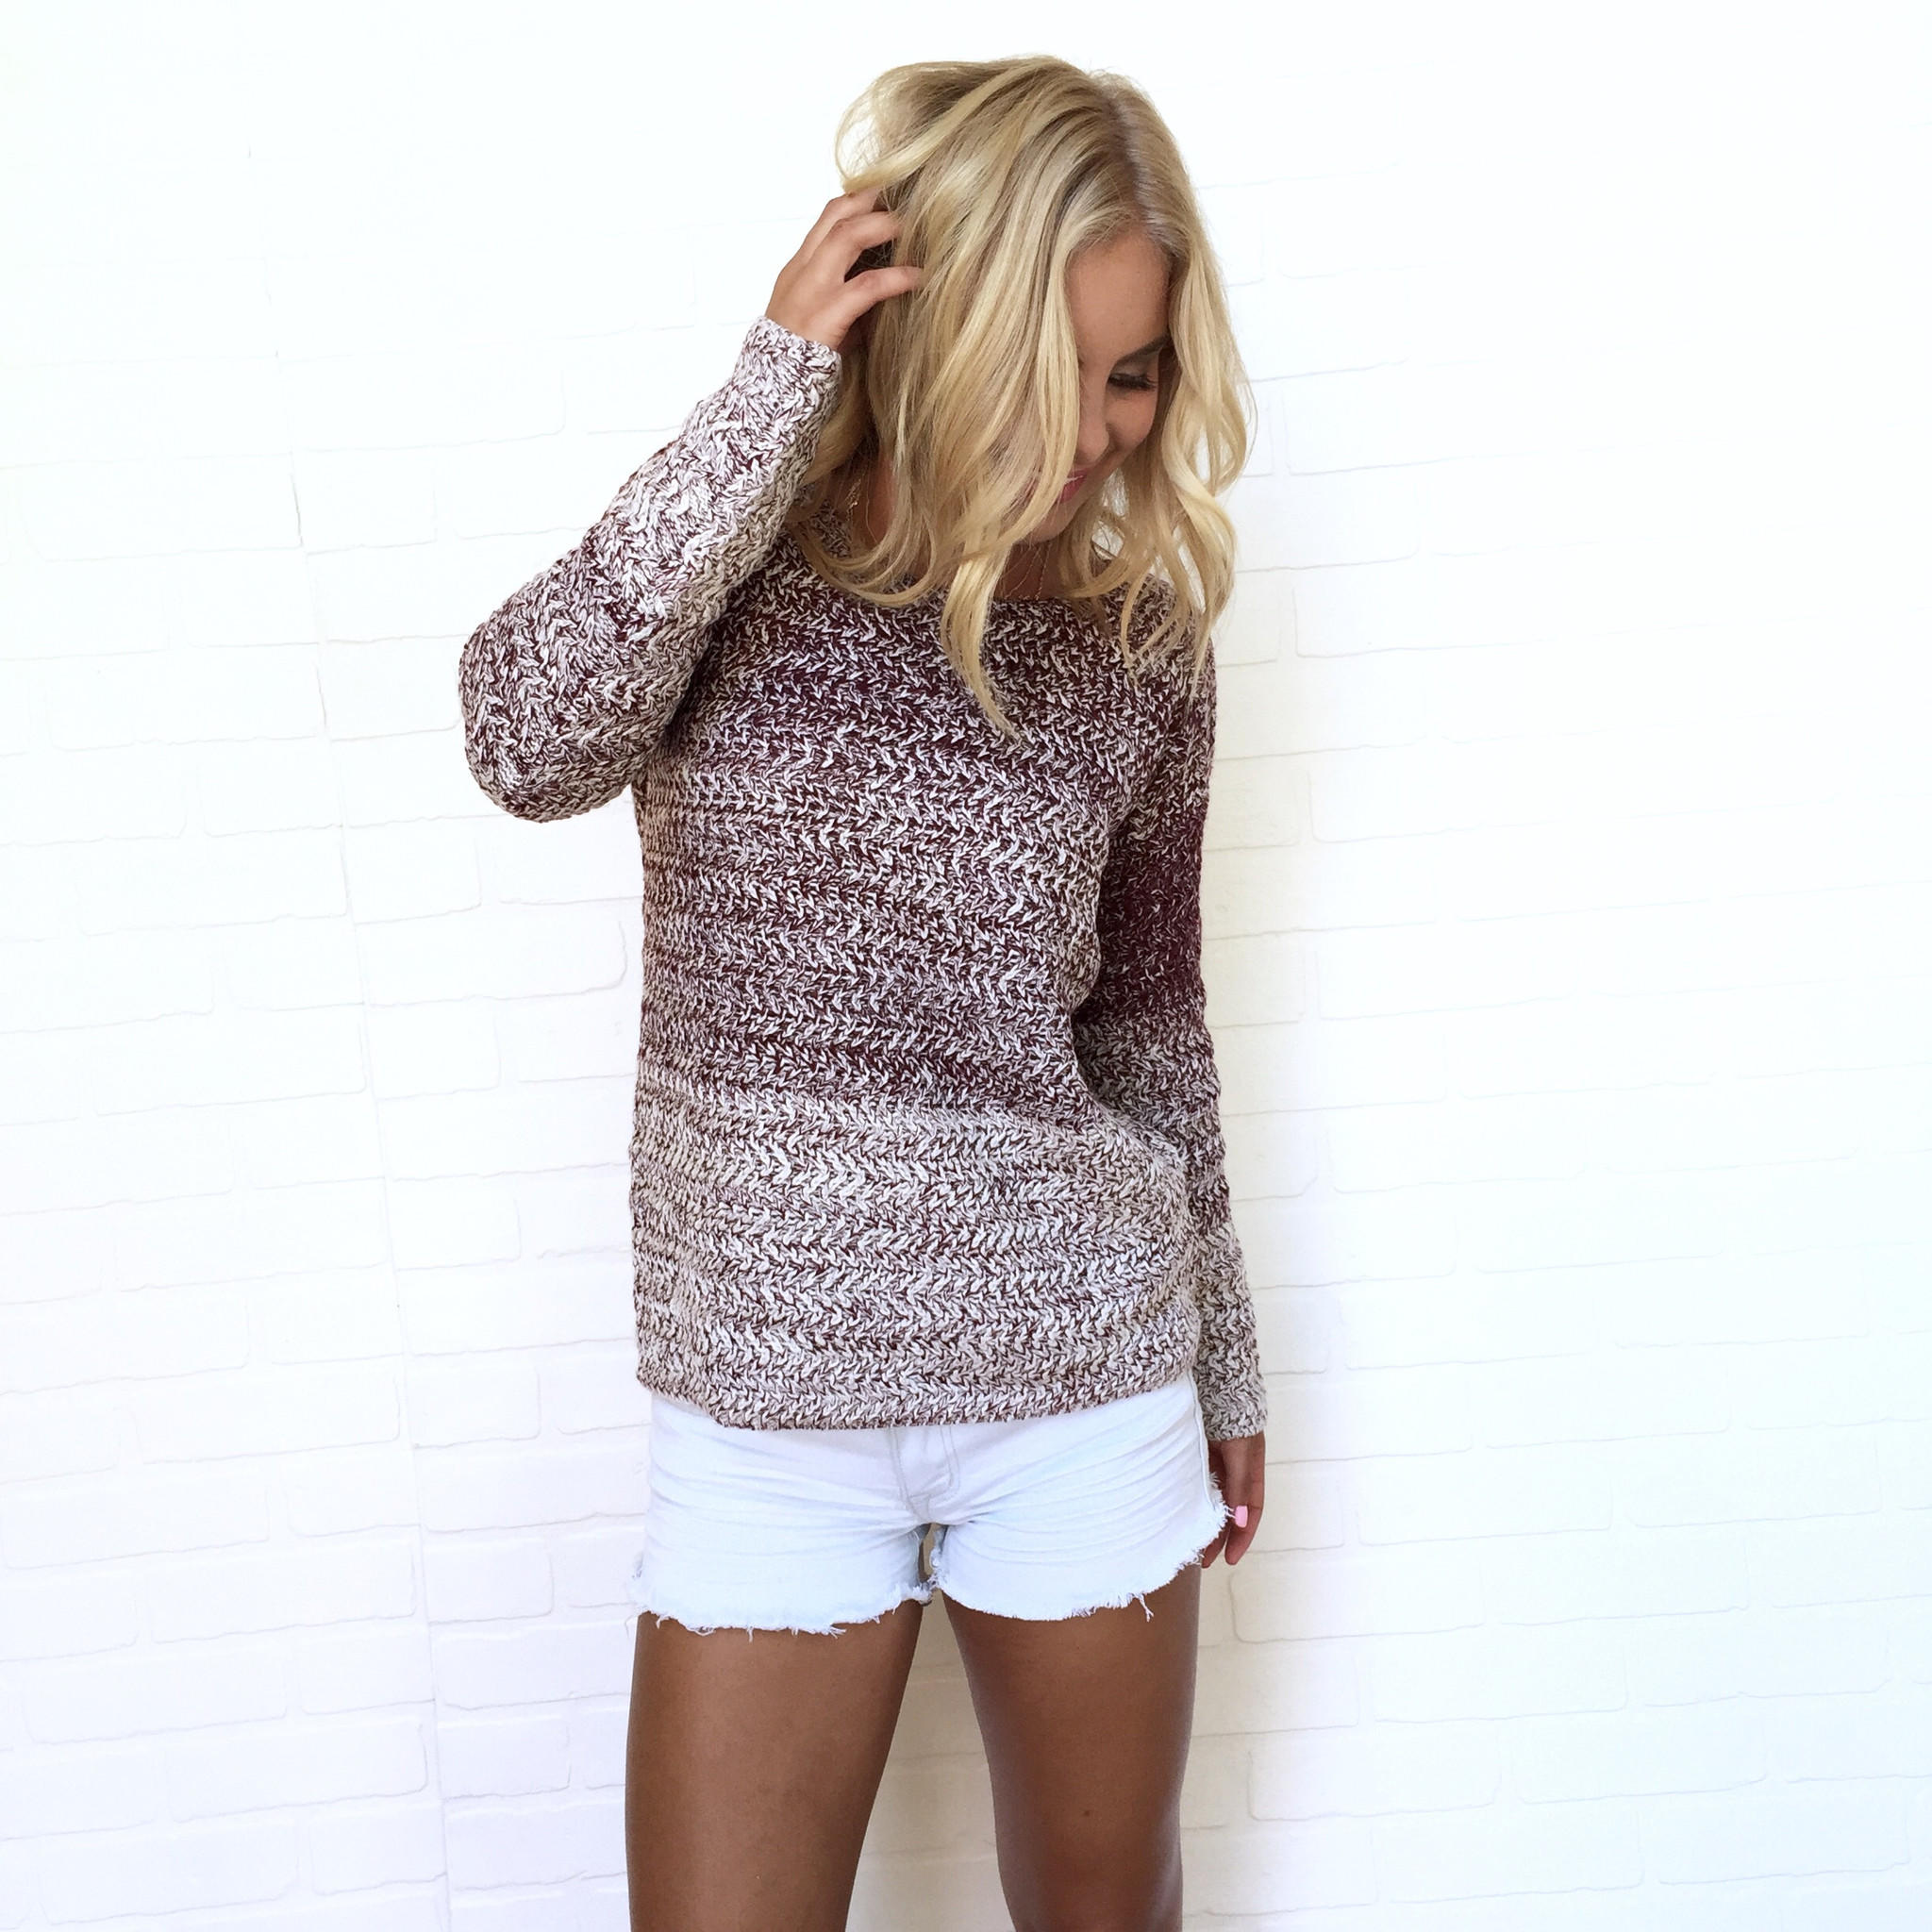 Image of Early Morning Ombré Knit Sweater In Plum